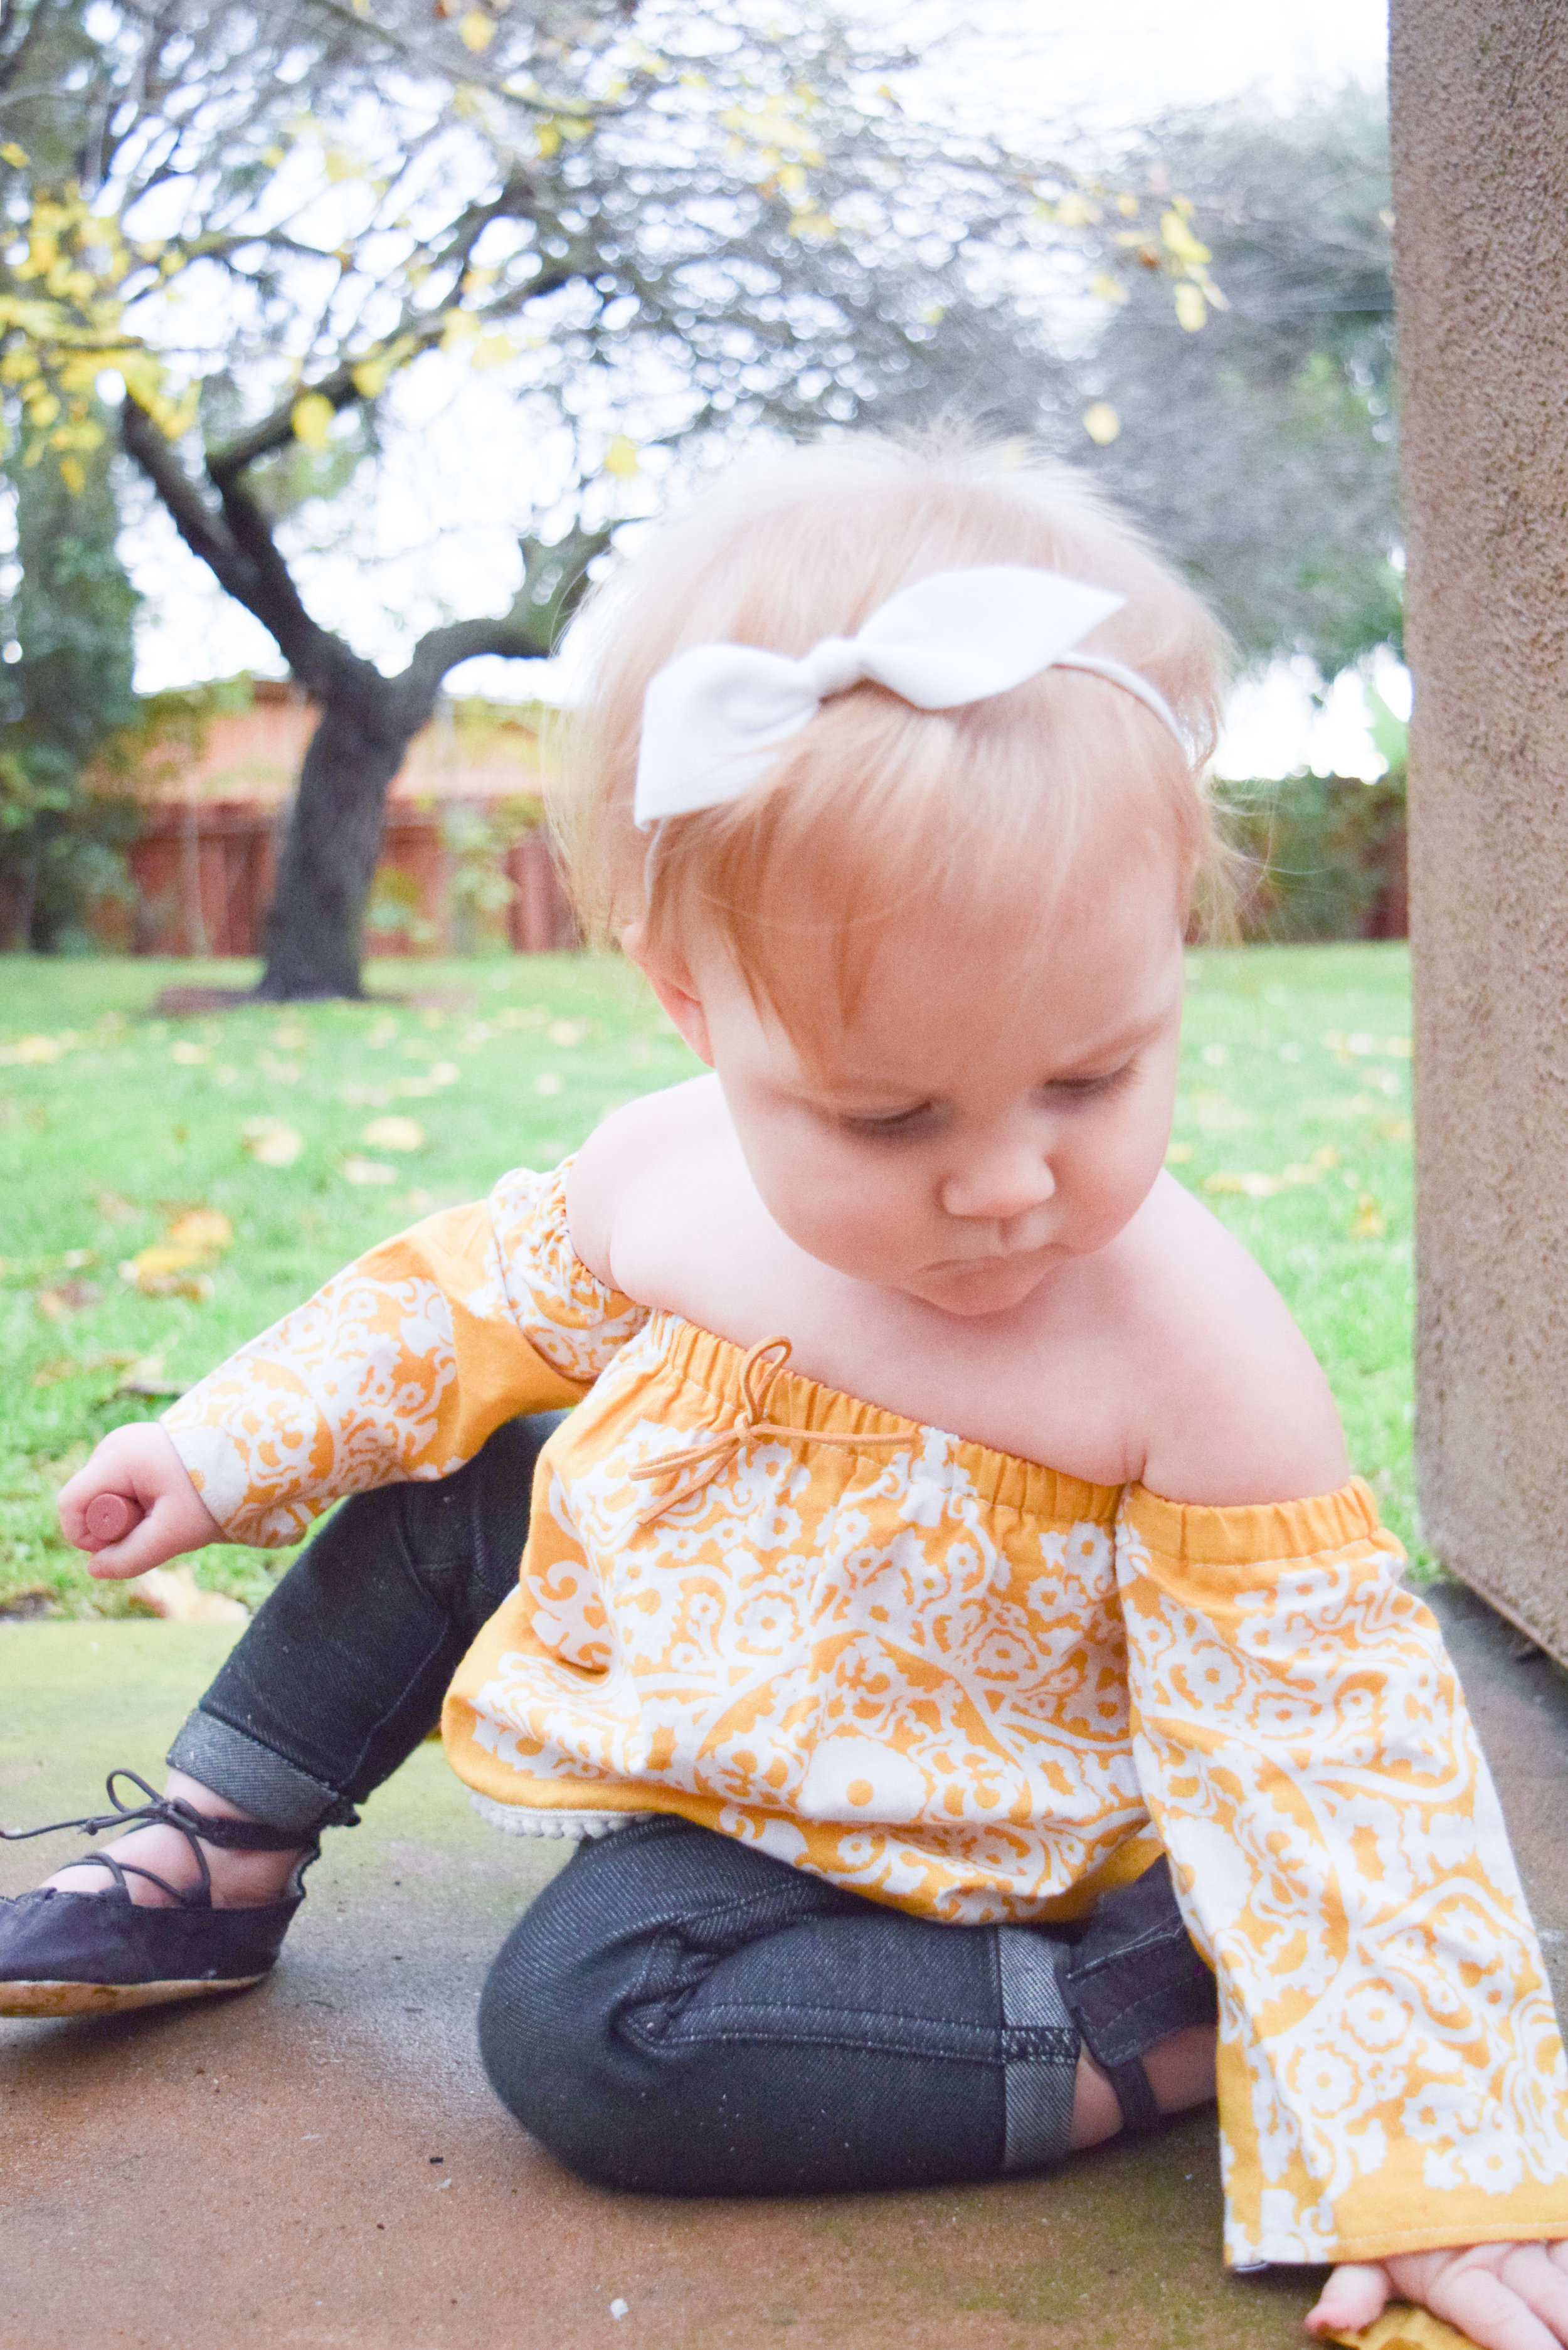 Baby Fashion - Off the shoulder baby shirt, baby skinny jeans, baby ballerina flats